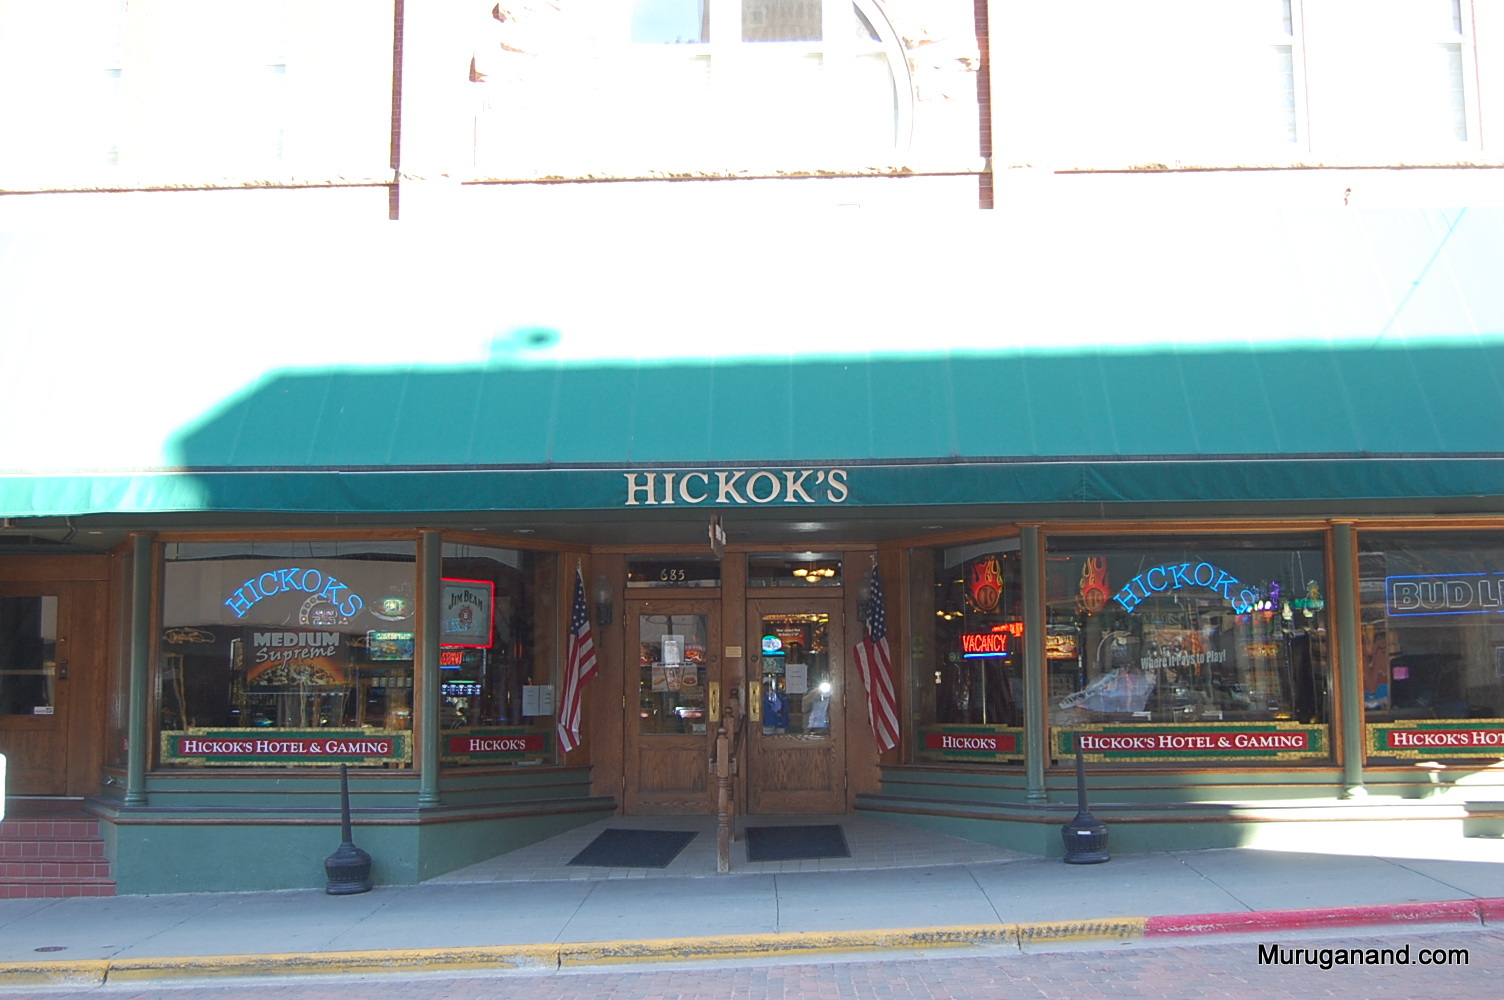 Hickok is still popular in Deadwood. Several hotels and stores bear his name.